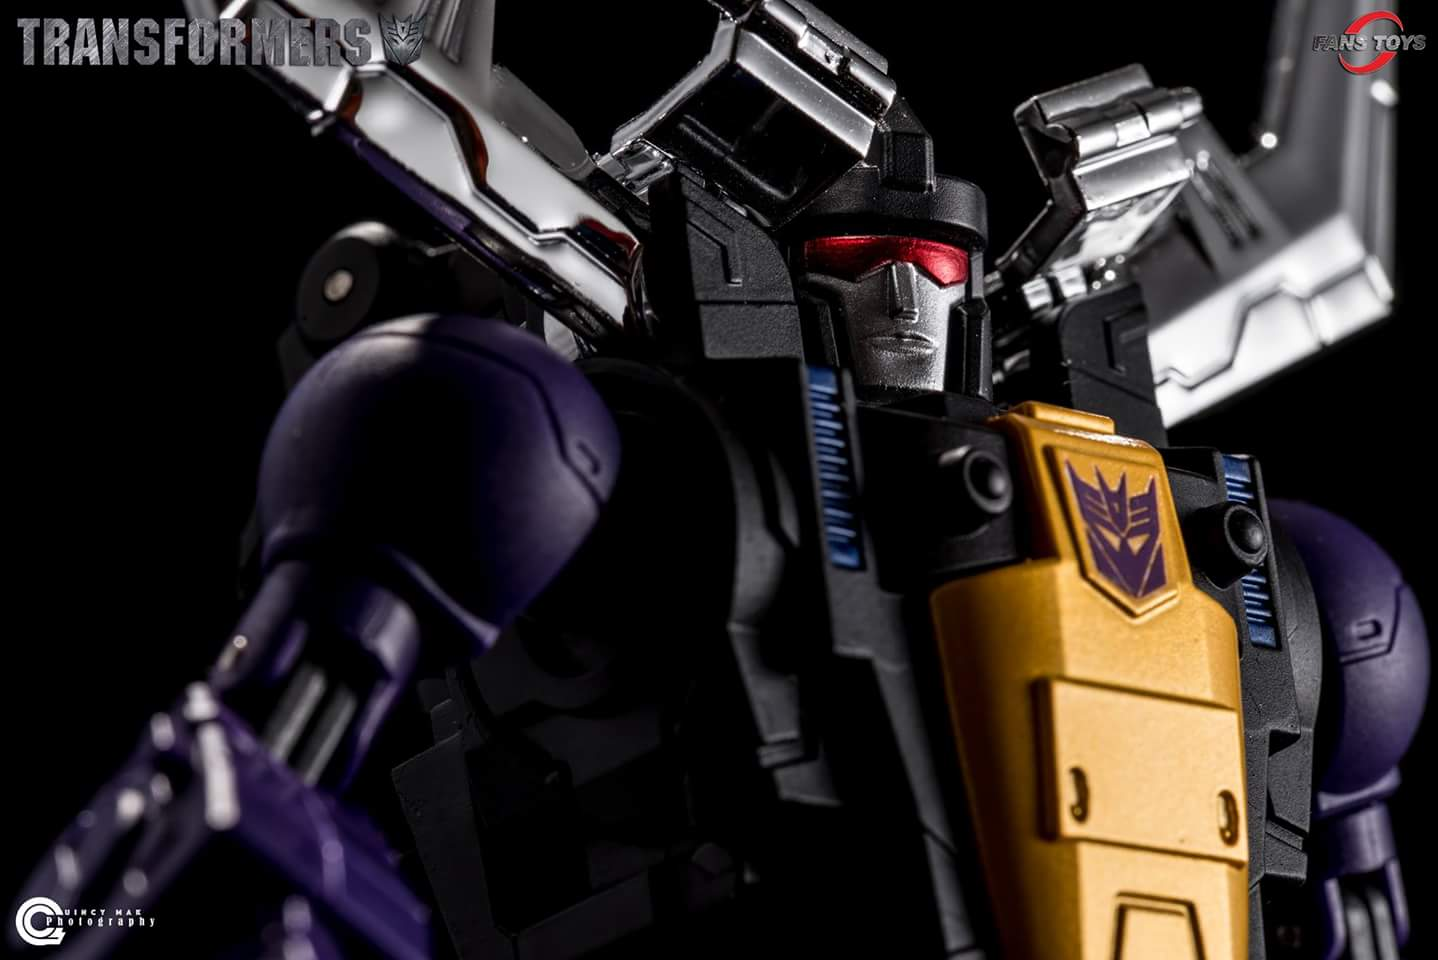 [Fanstoys] Produit Tiers - Jouet FT-12 Grenadier / FT-13 Mercenary / FT-14 Forager - aka Insecticons - Page 3 OtnmR9VM